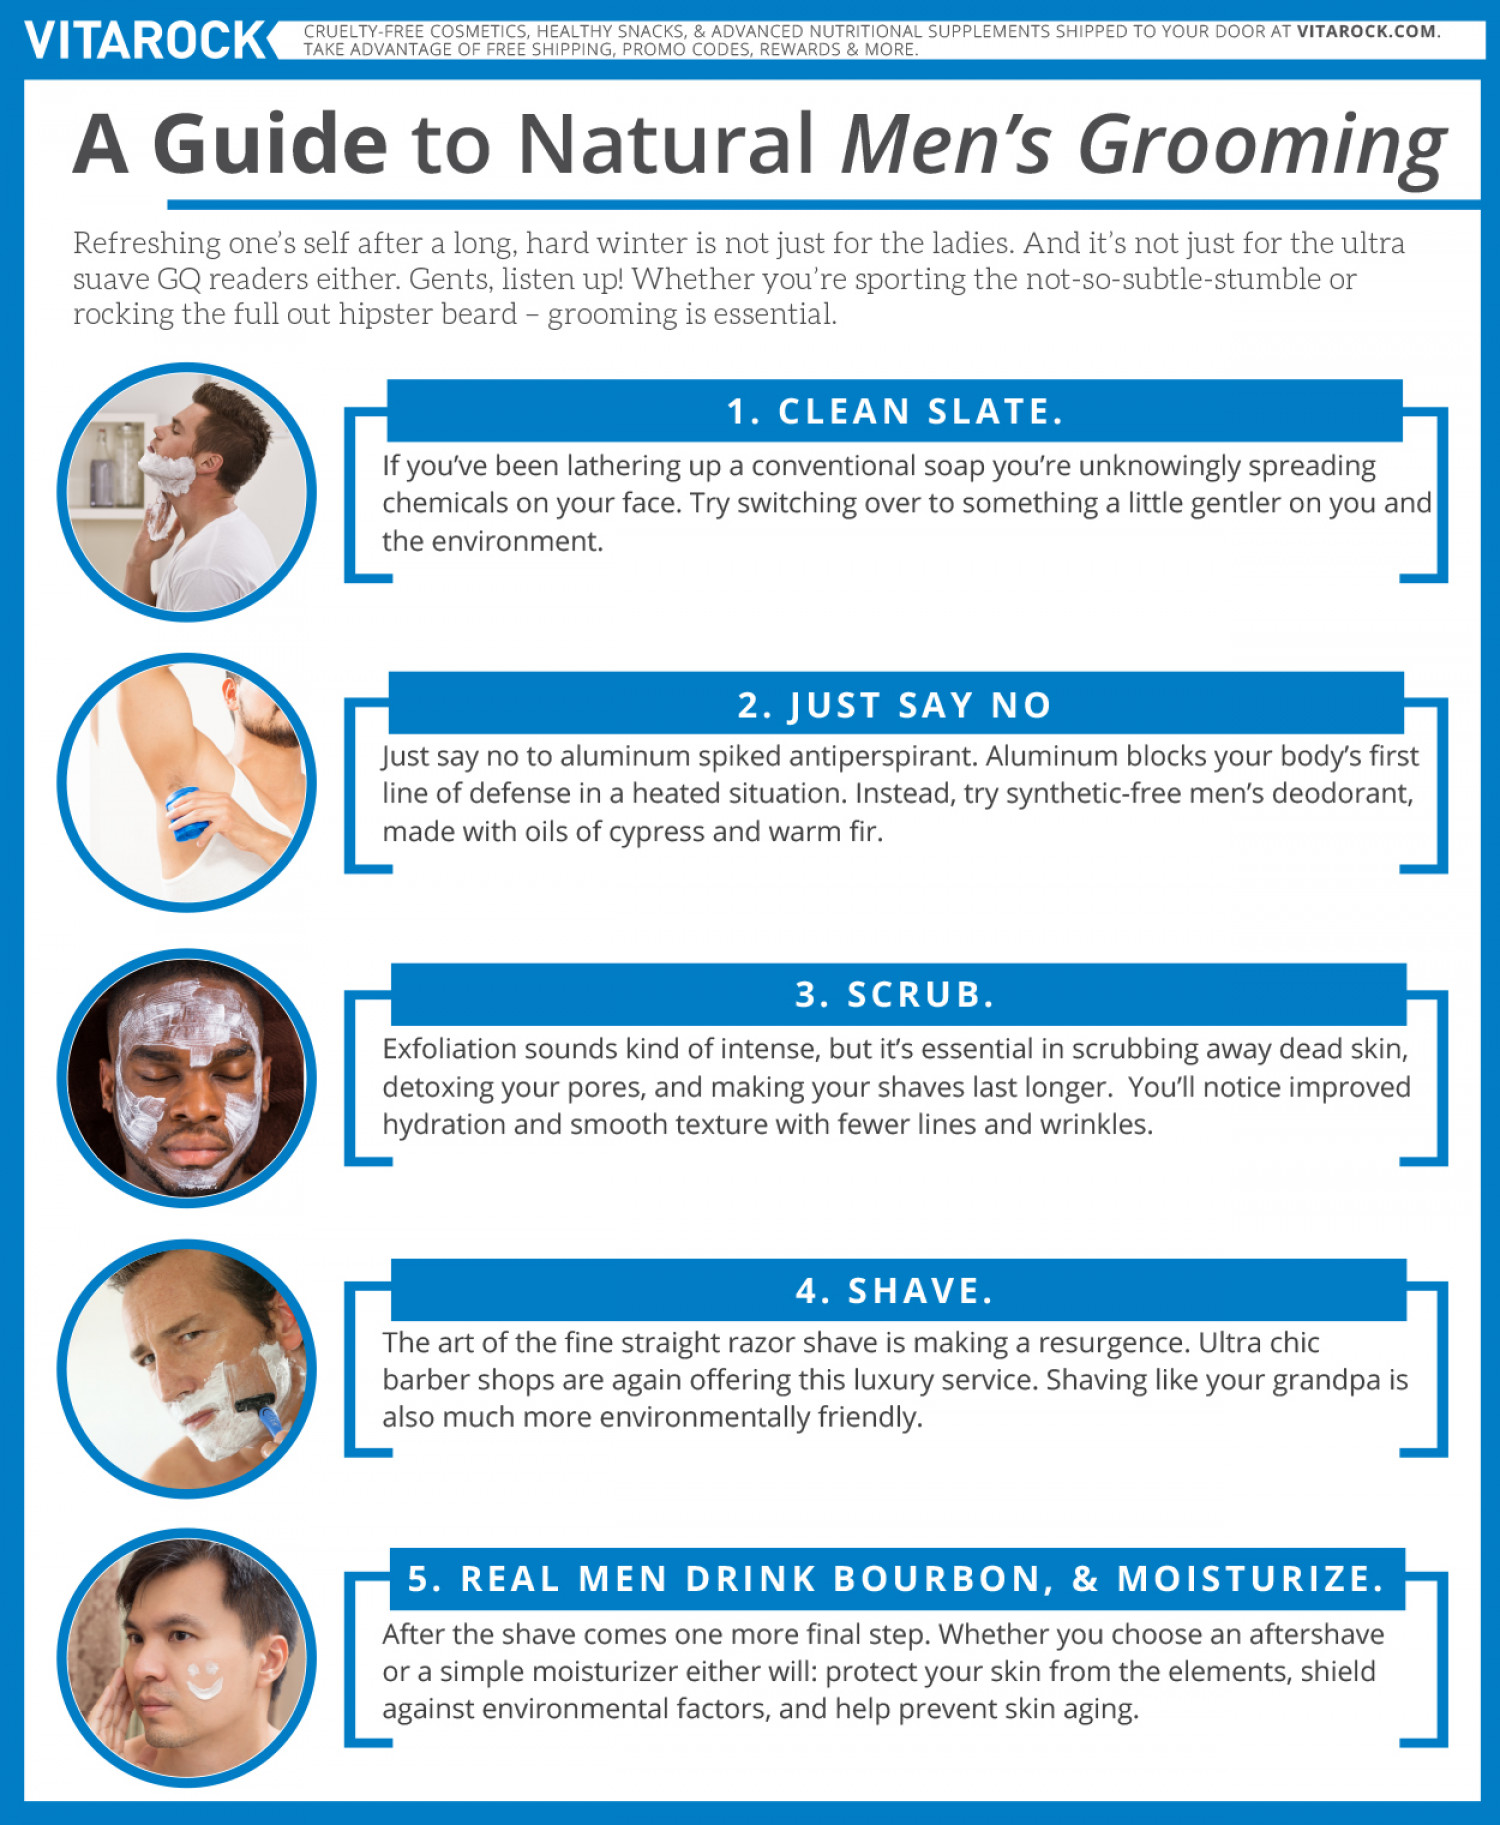 A Guide to Natural Men's Grooming Infographic